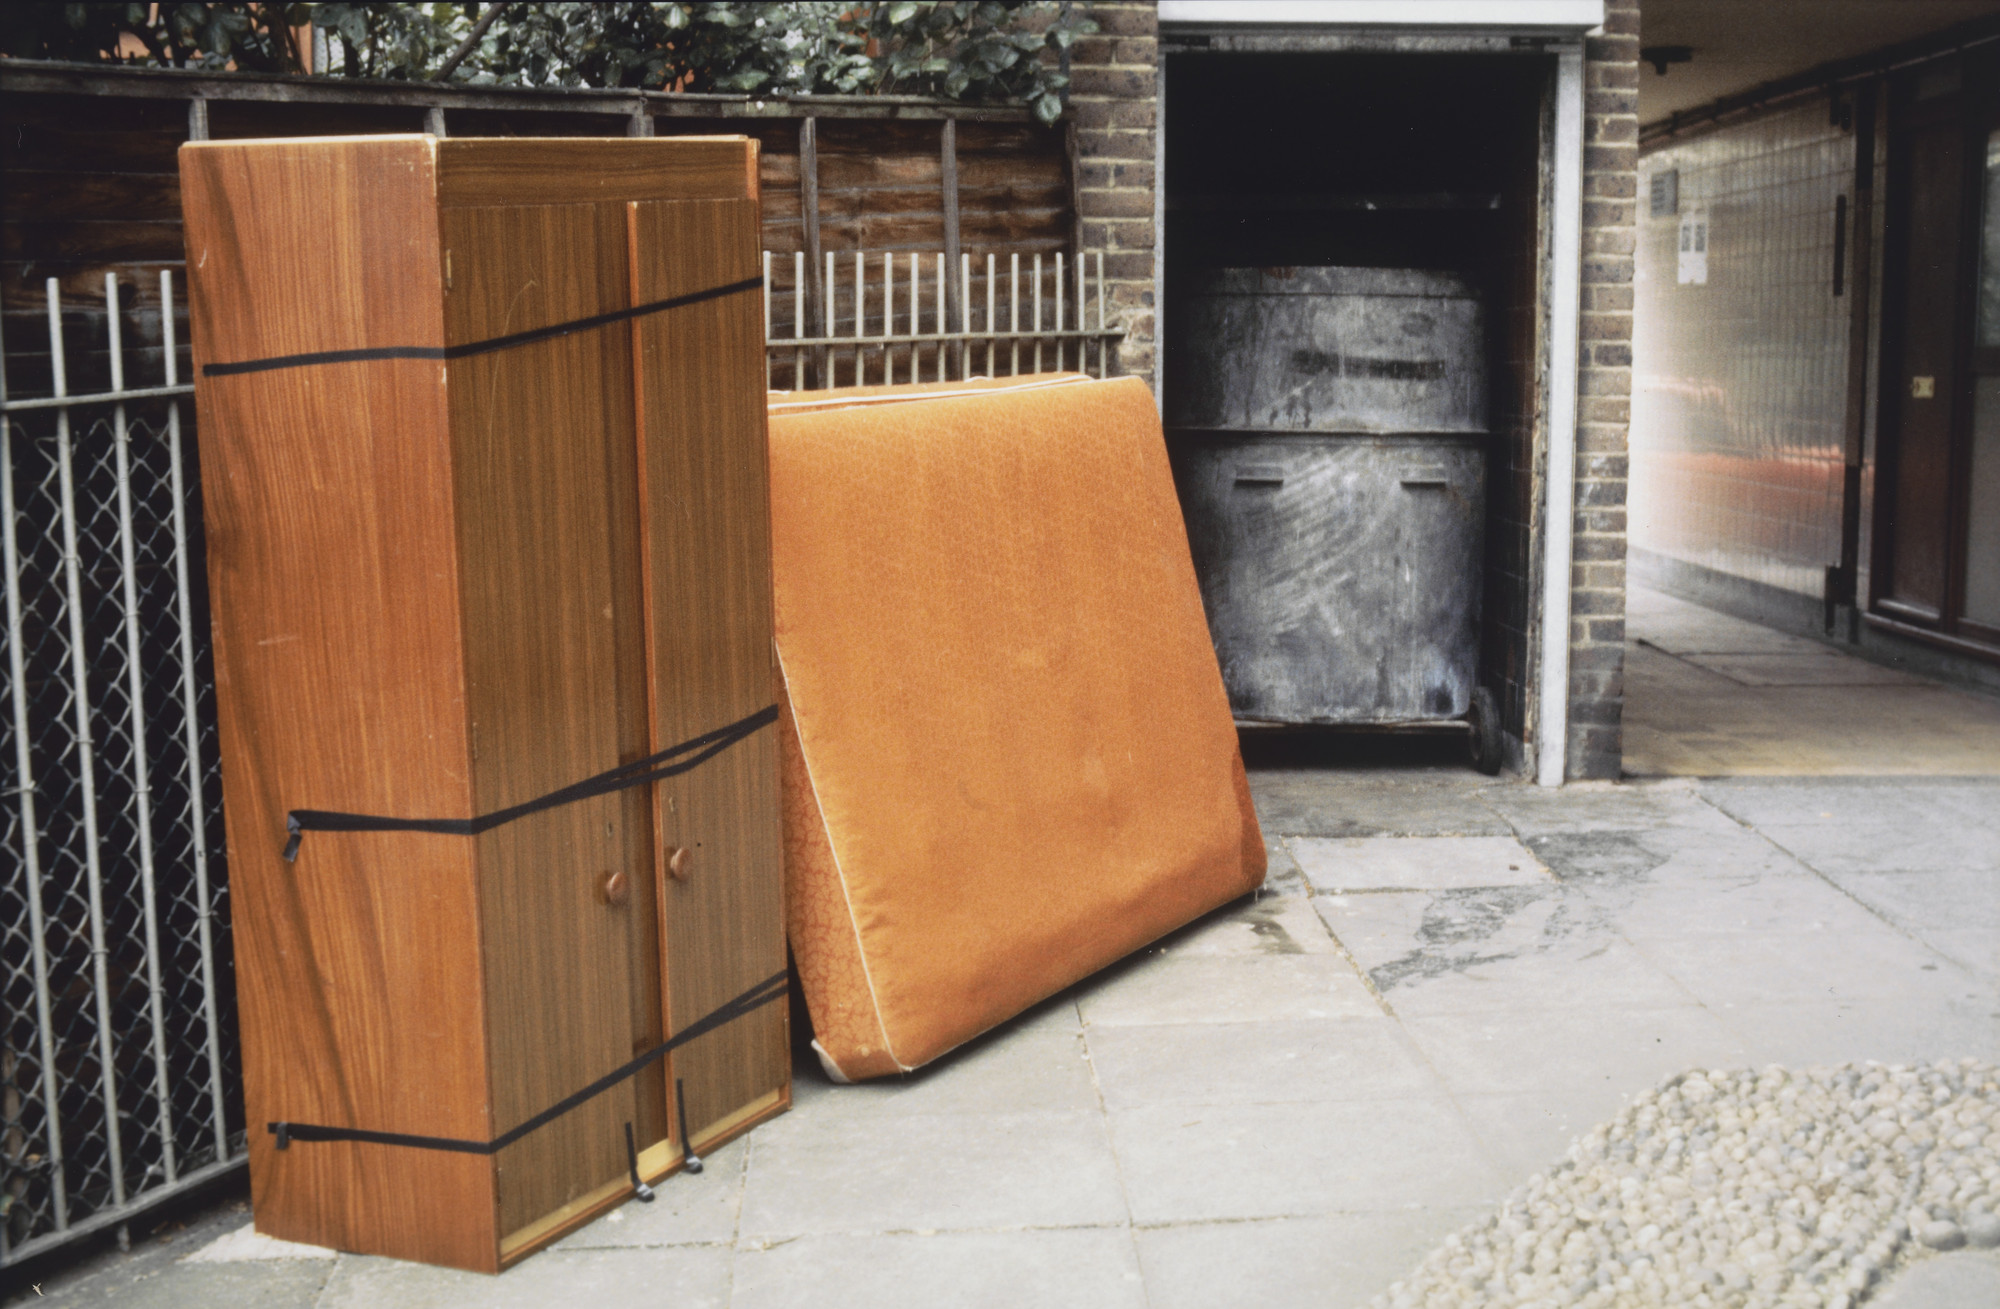 Rachel Whiteread. Furniture: Wardrobe and Bed, London. 1992